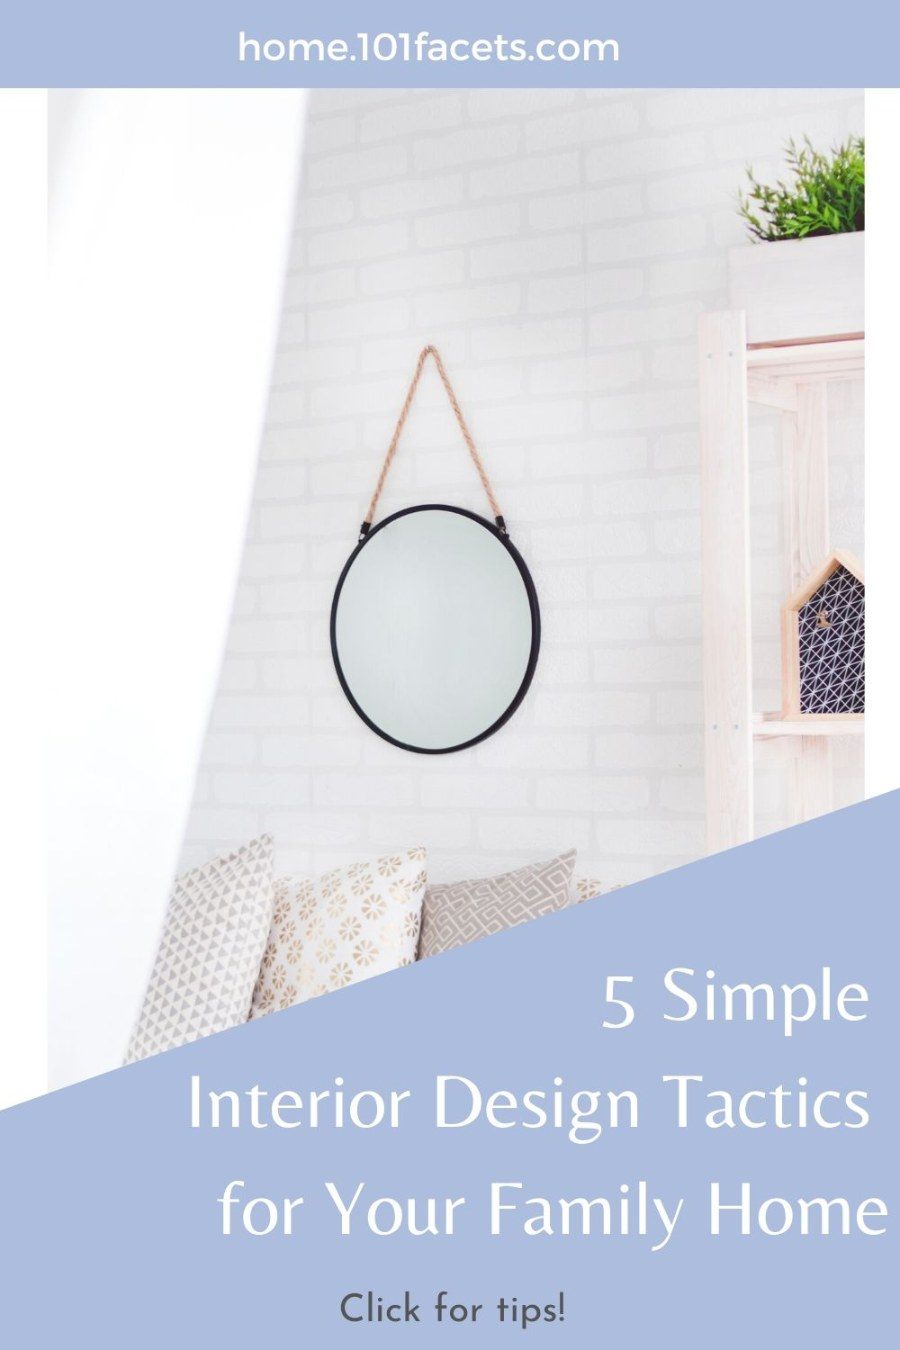 5 Simple Interior Design Tactics for Your Family Home